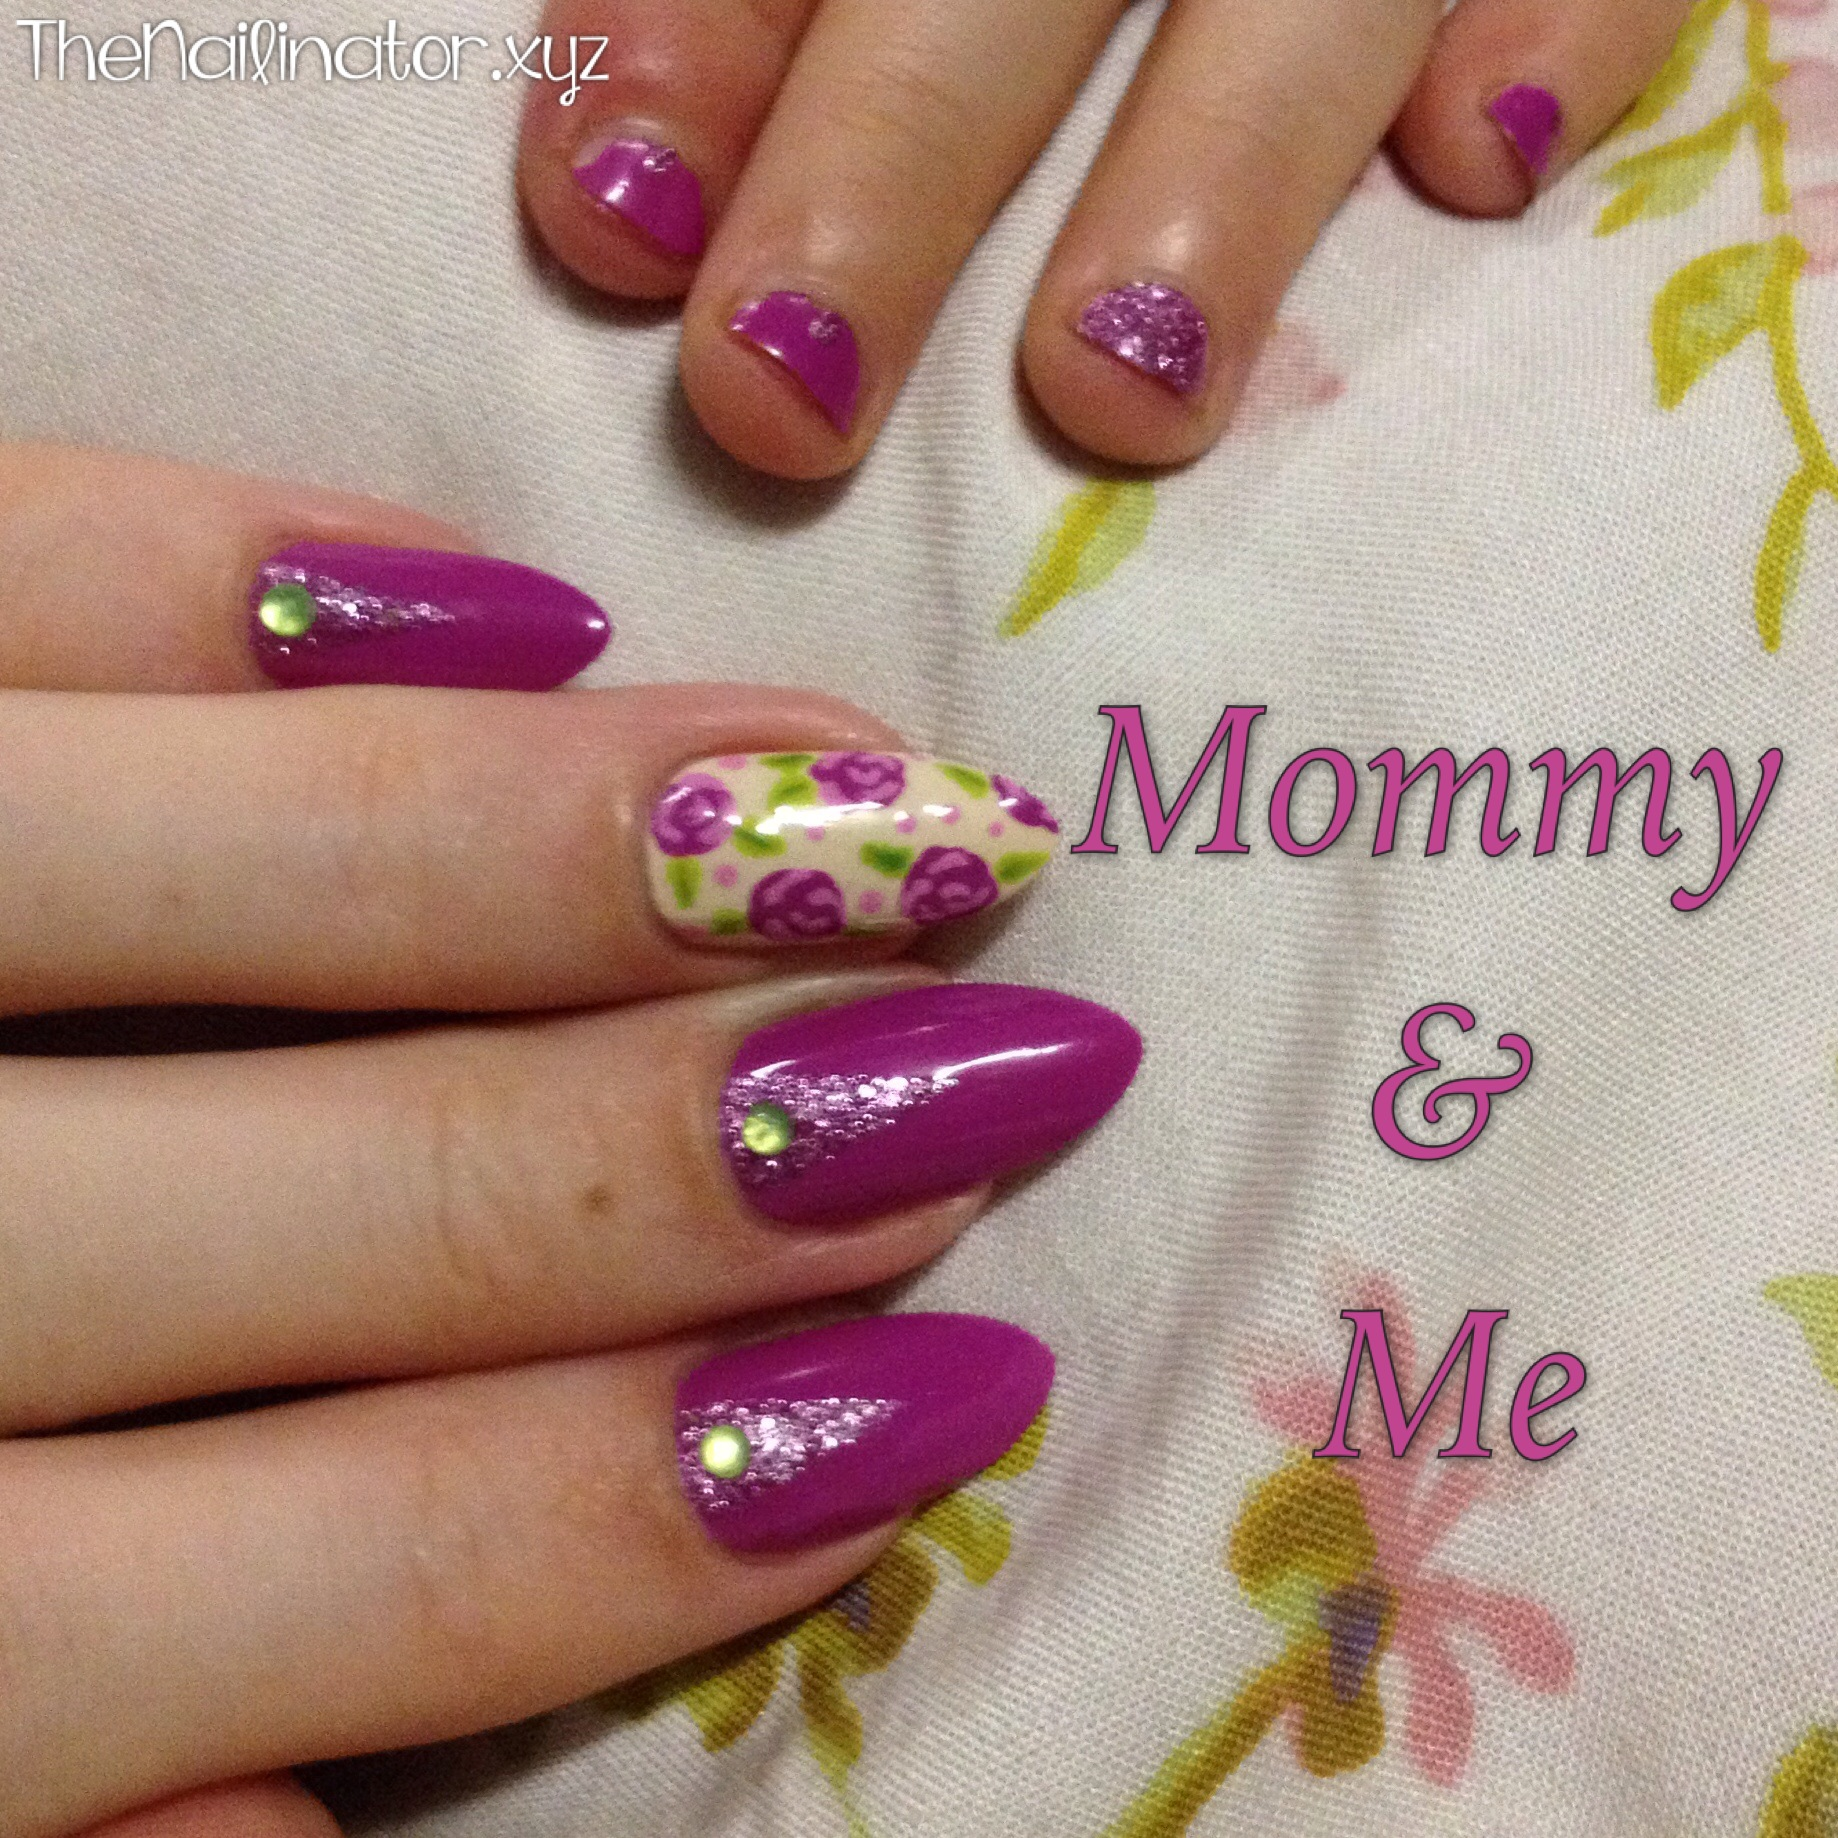 Mommy & Me manicure featuring Girlstuff Forever polishes